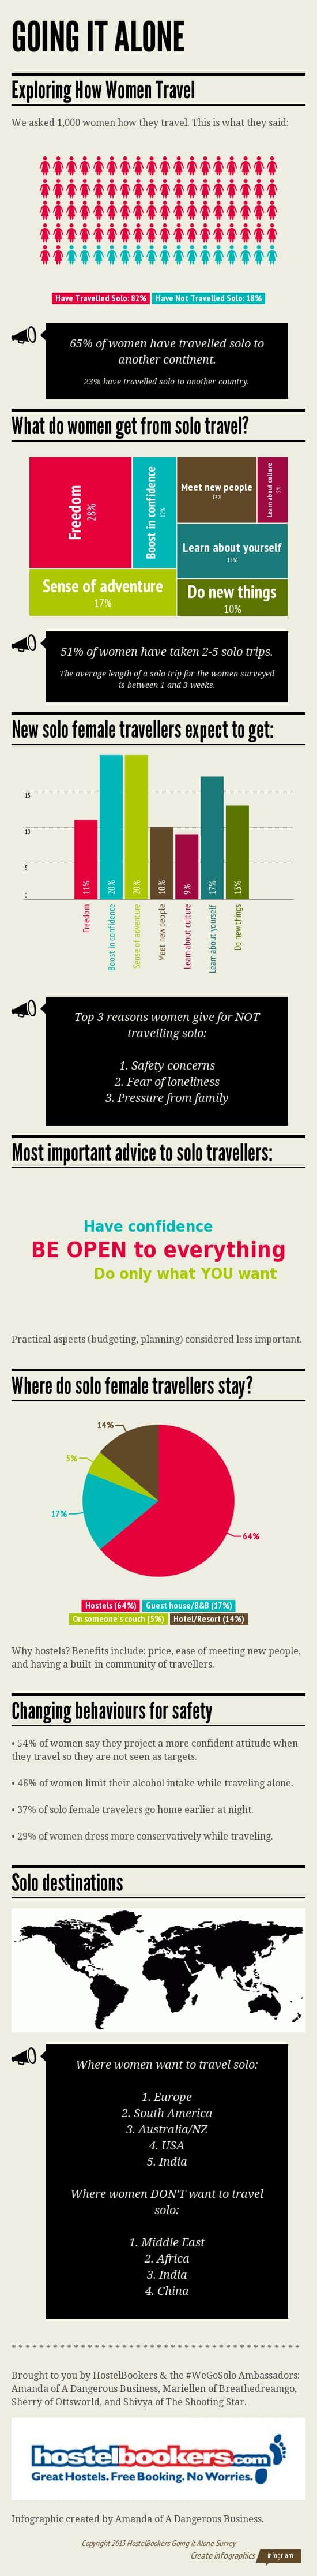 WeGoSolo Female solo travellers infographic